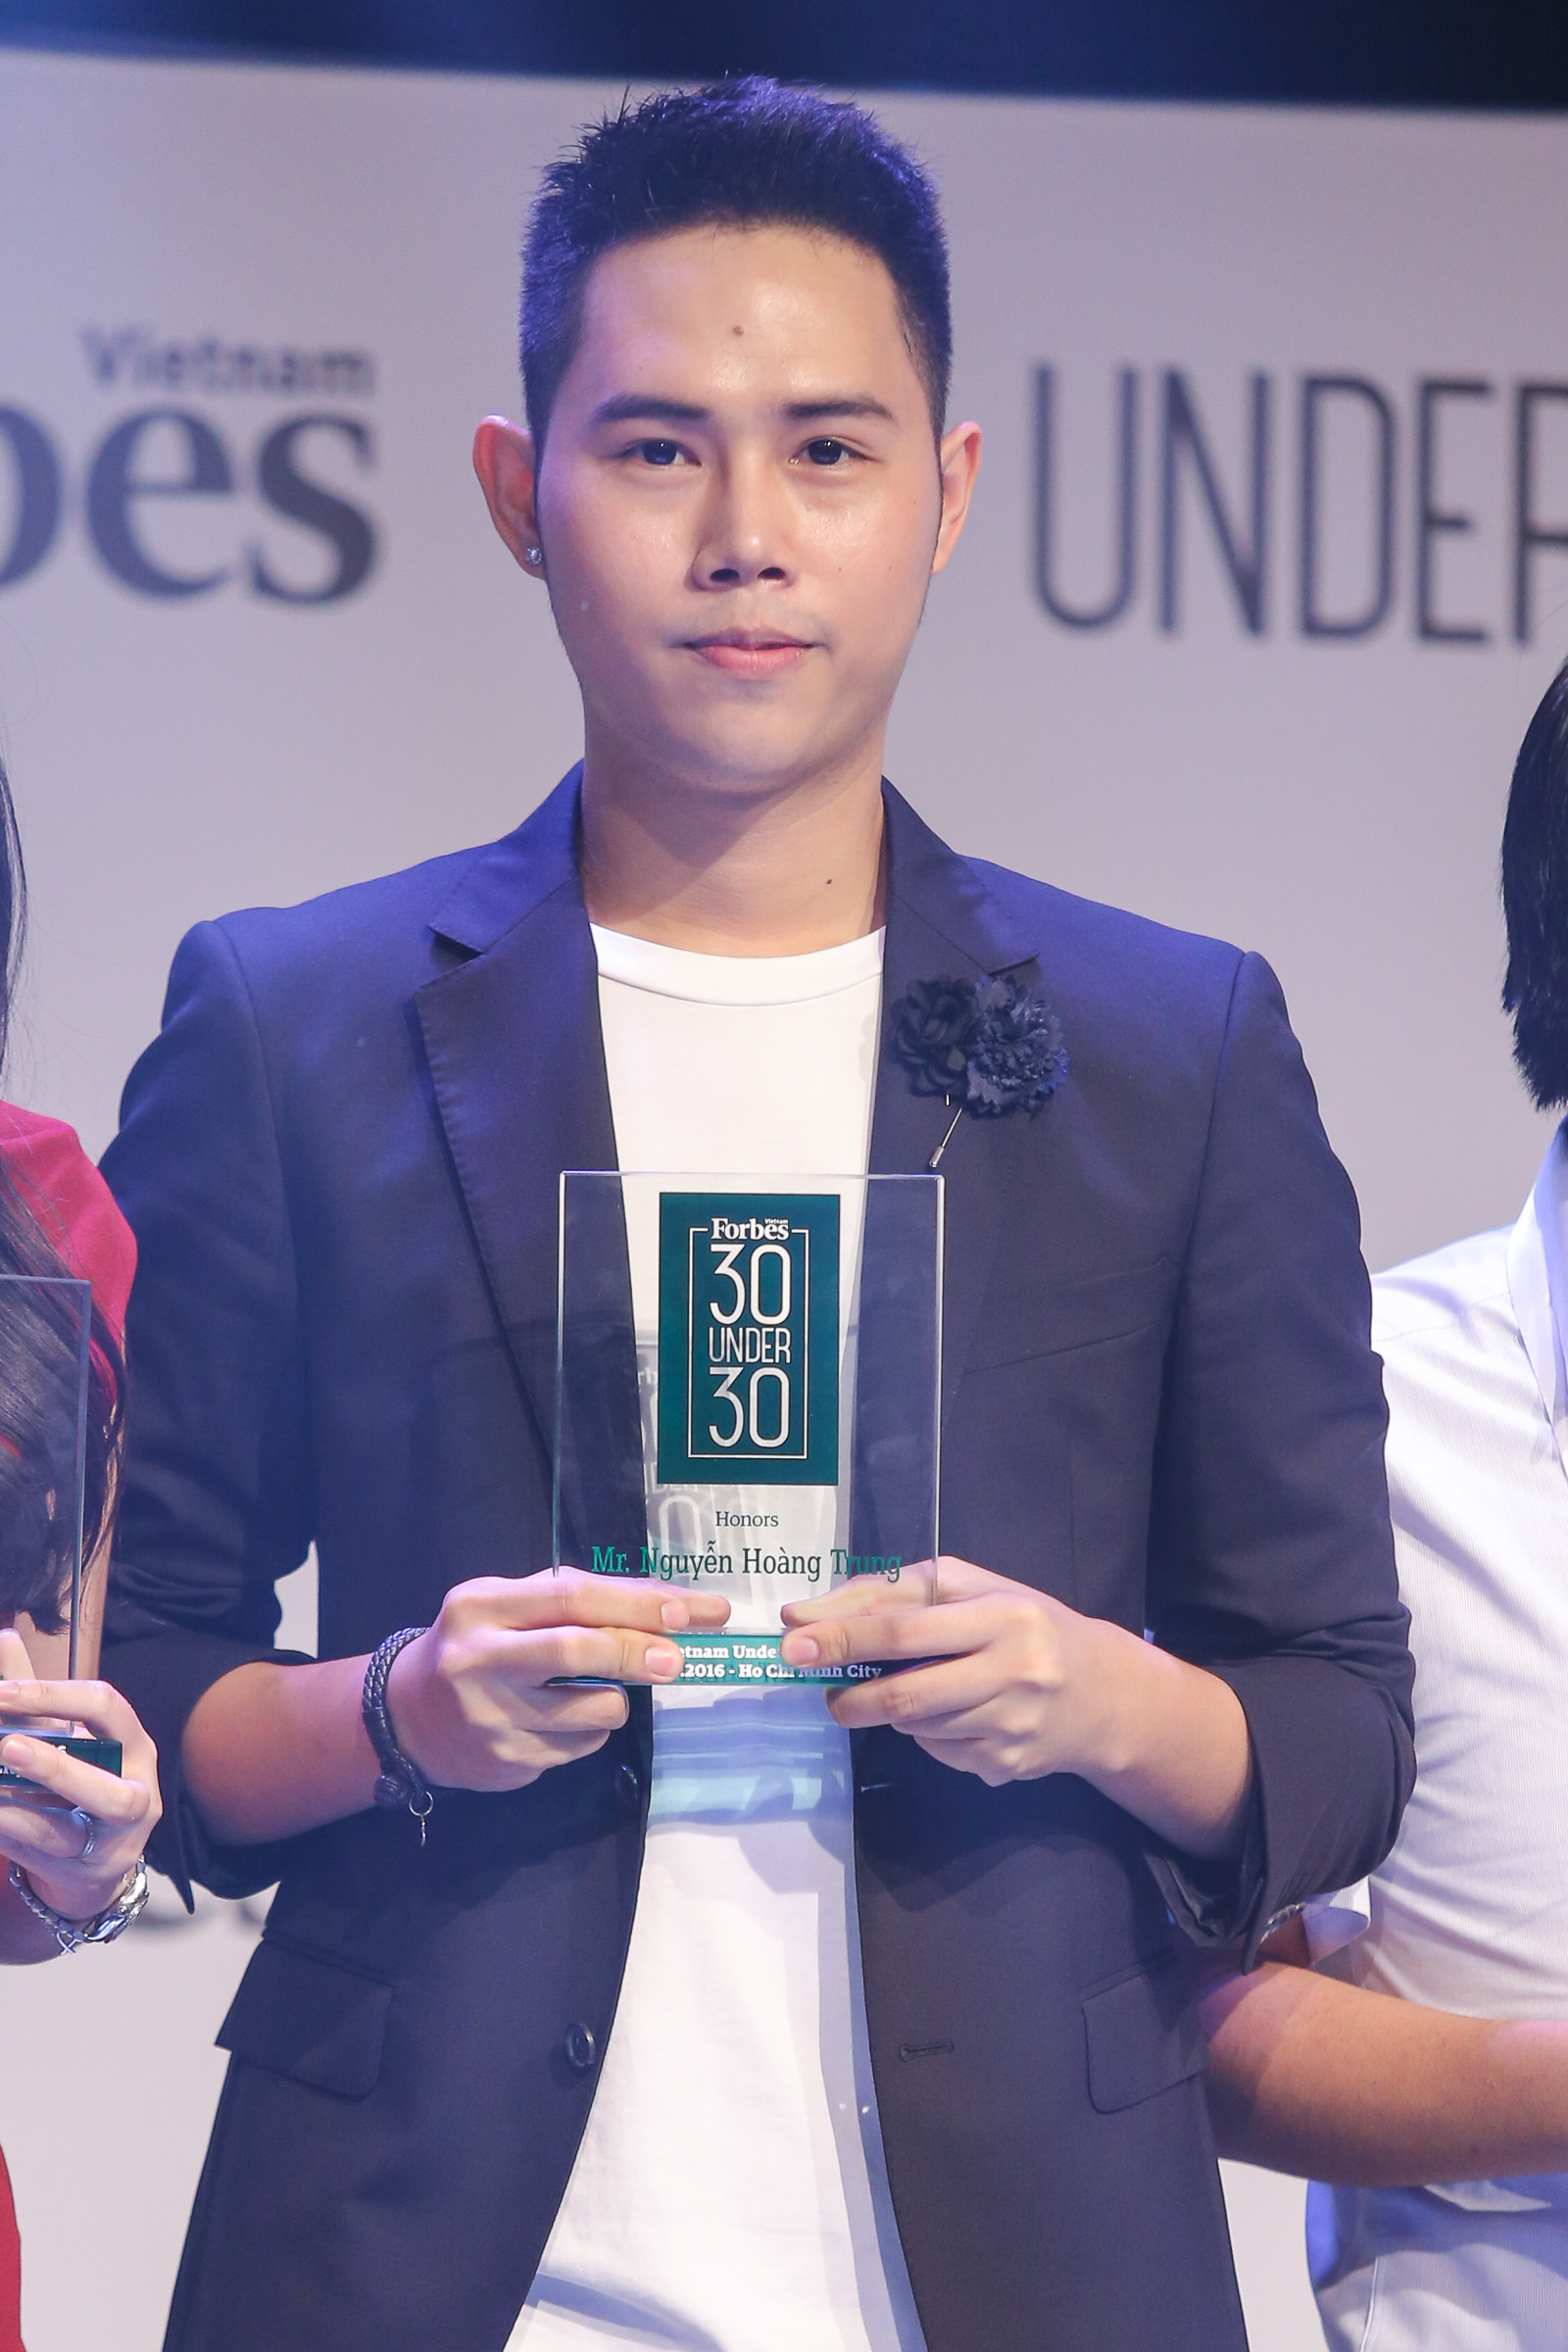 forbes china unveils list of 300 top innovators - 490×735